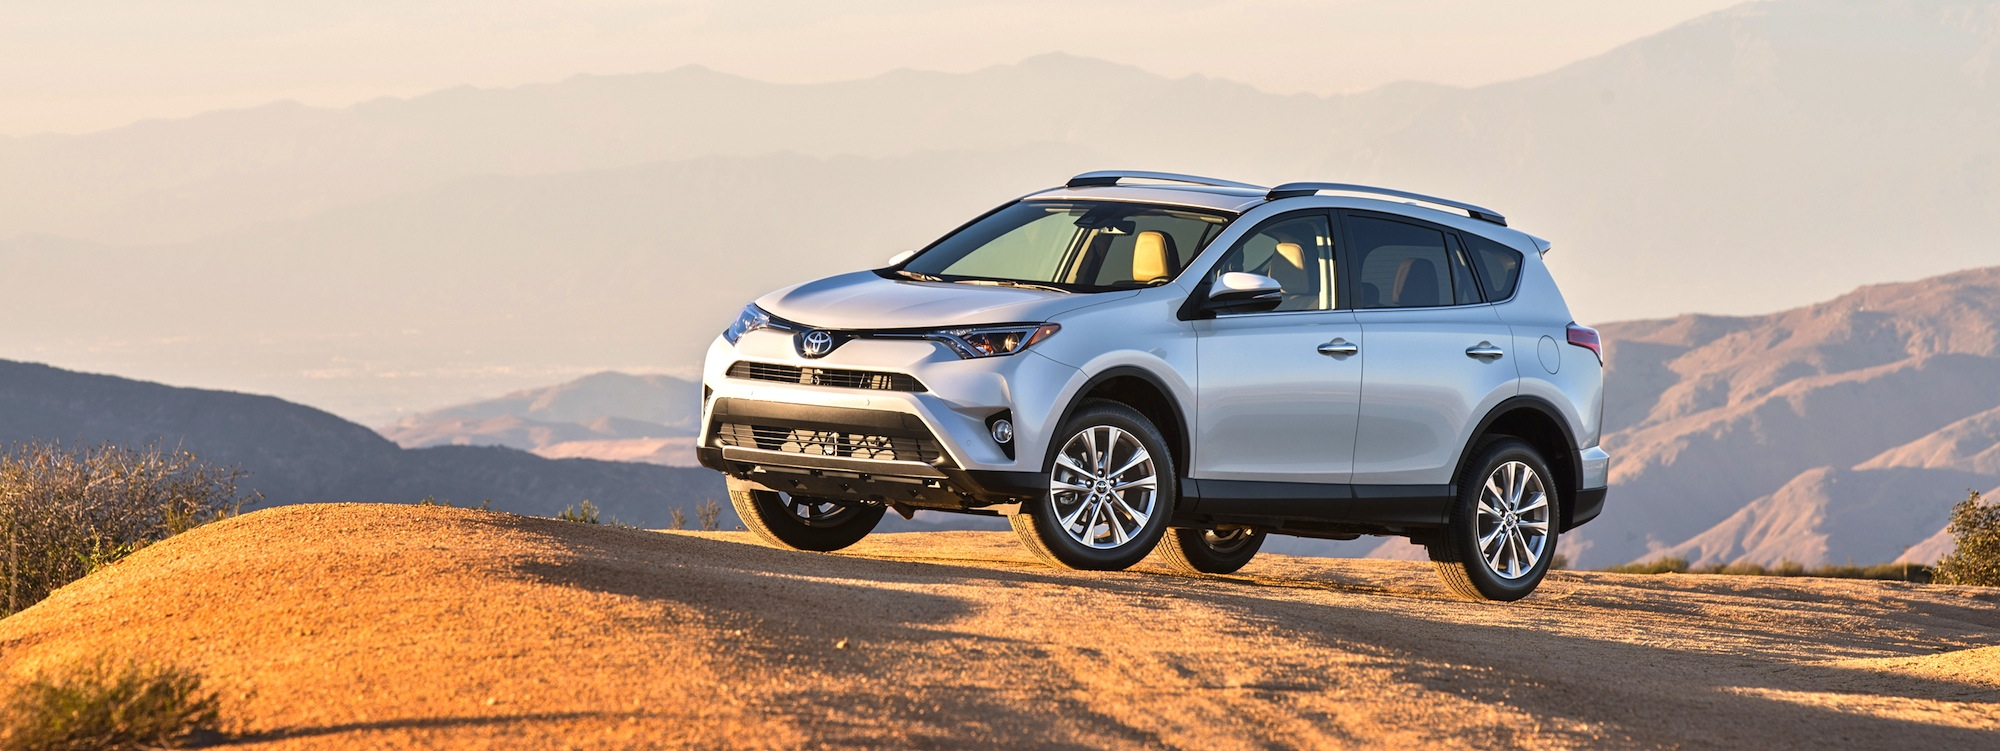 These Are The Very Best Suv Lease Deals For September 2018